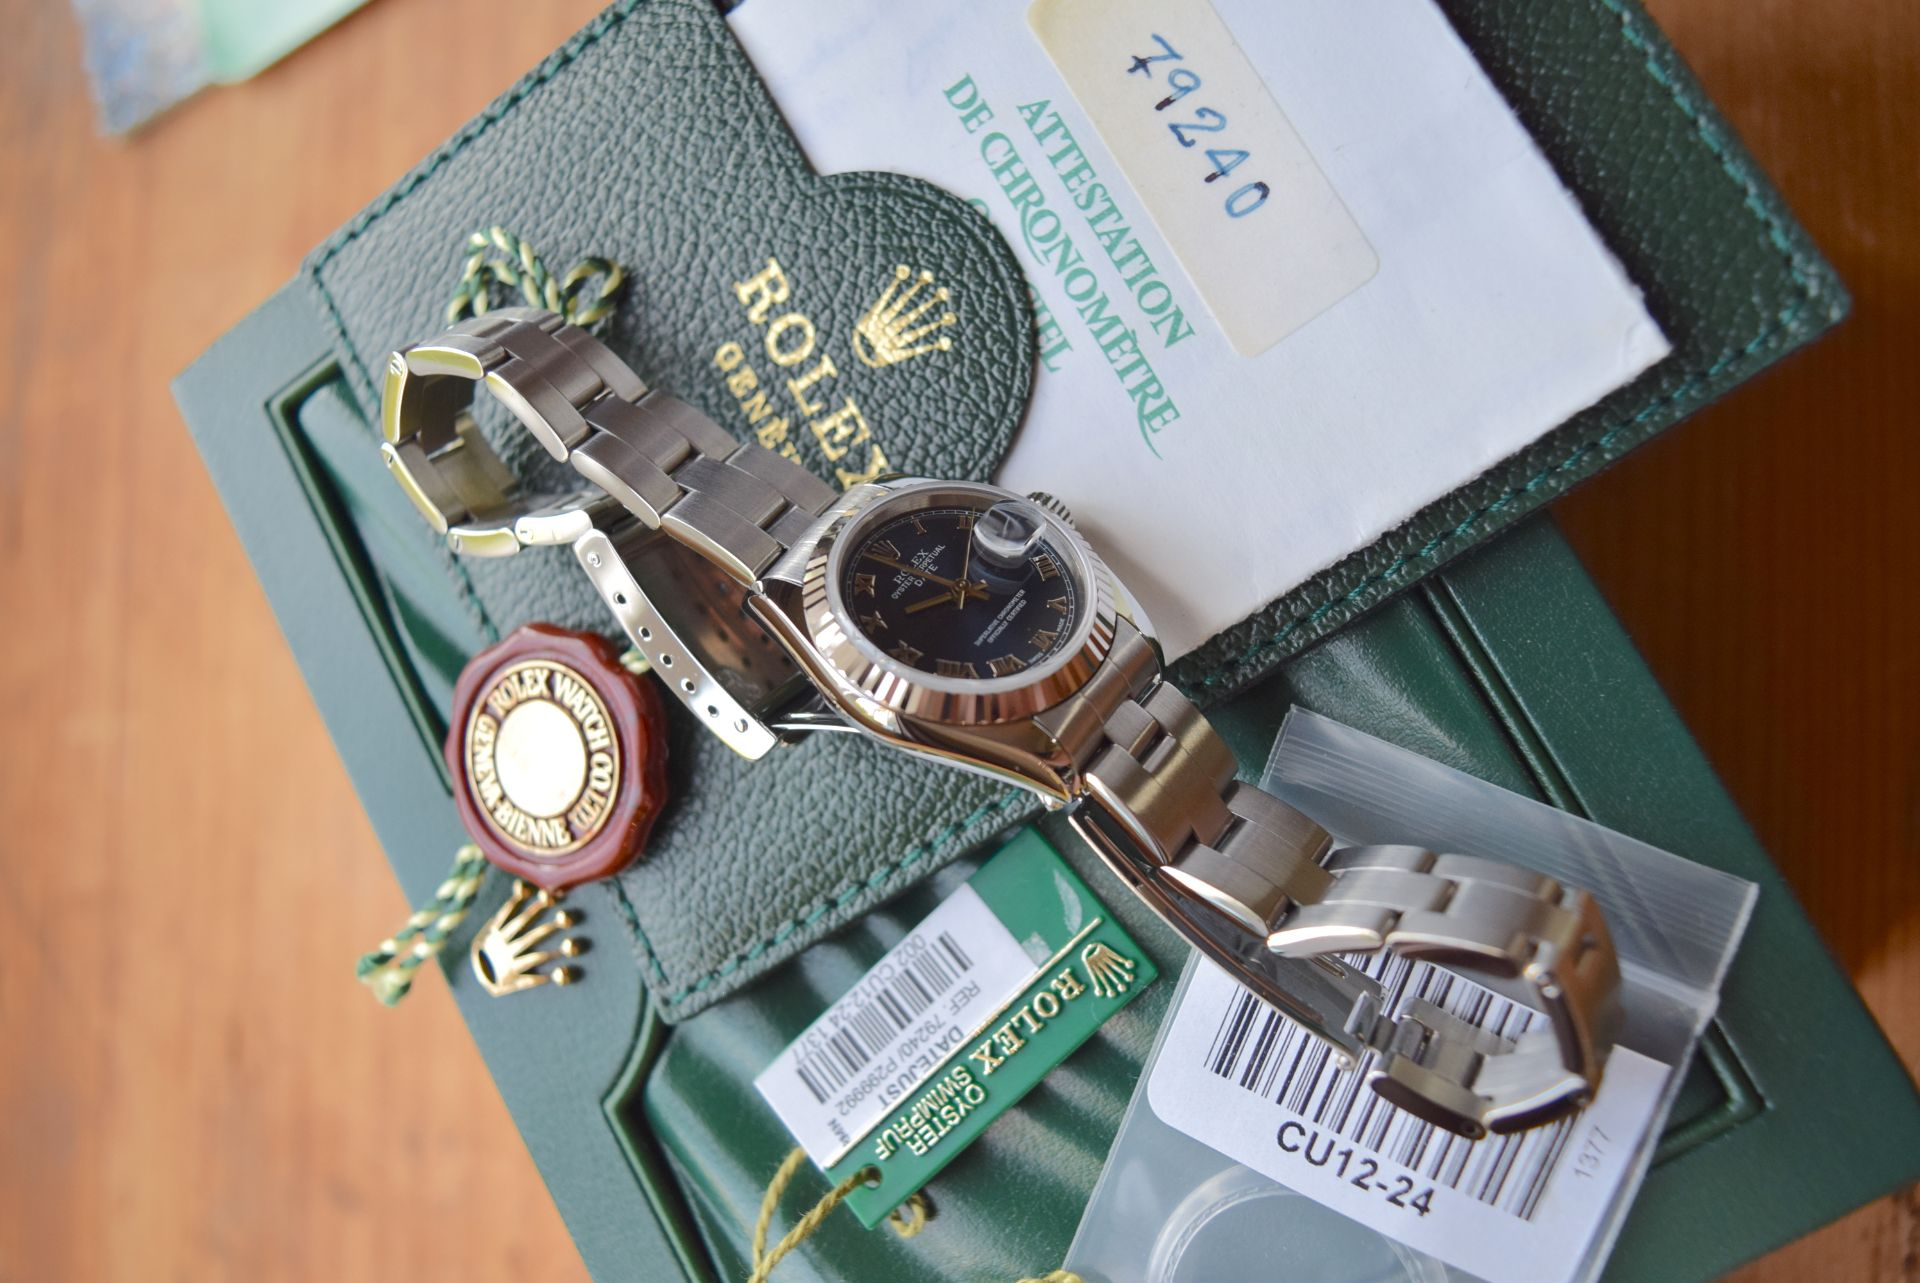 *FULL SET* ROLEX DATEJUST (LADIES) STEEL & 18CT WHITE GOLD - NAVY BLUE 'ROMAN NUMERAL' DIAL - Image 15 of 19